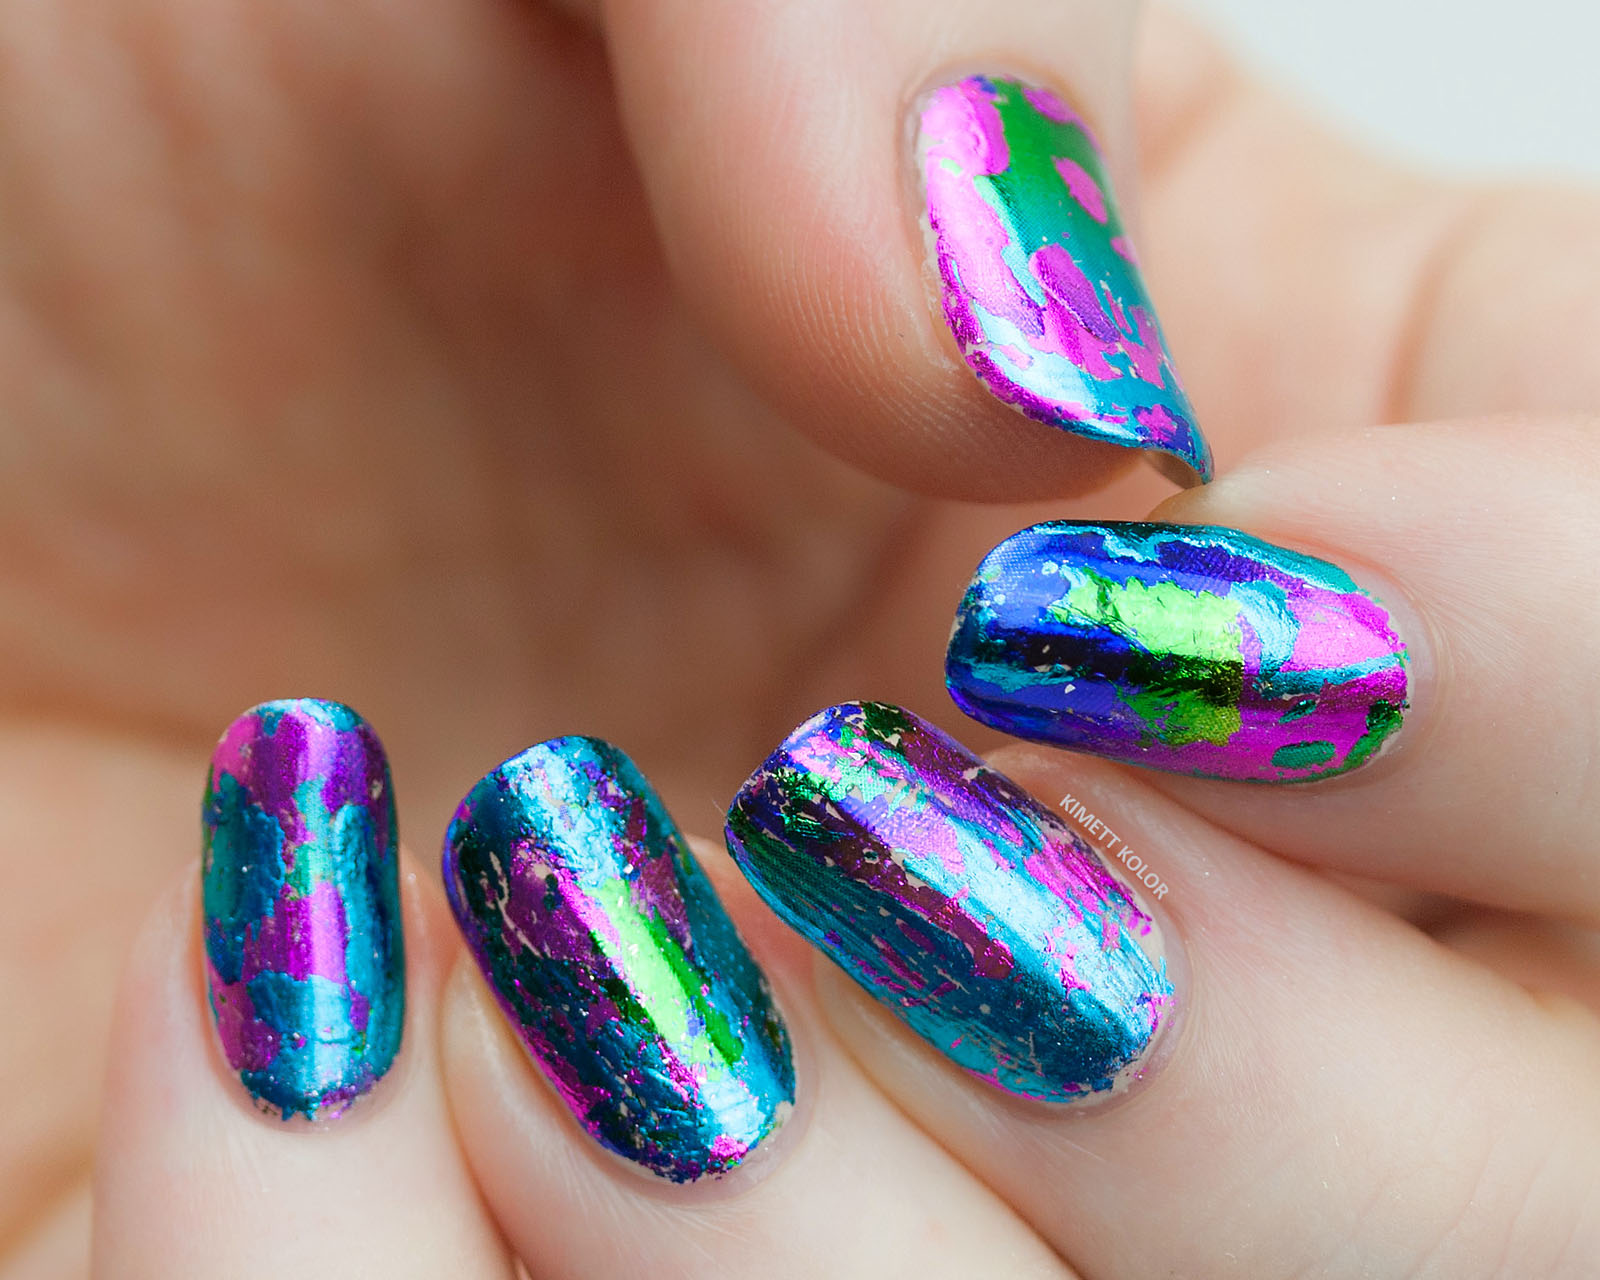 Kimett Kolor nail foil nail art base